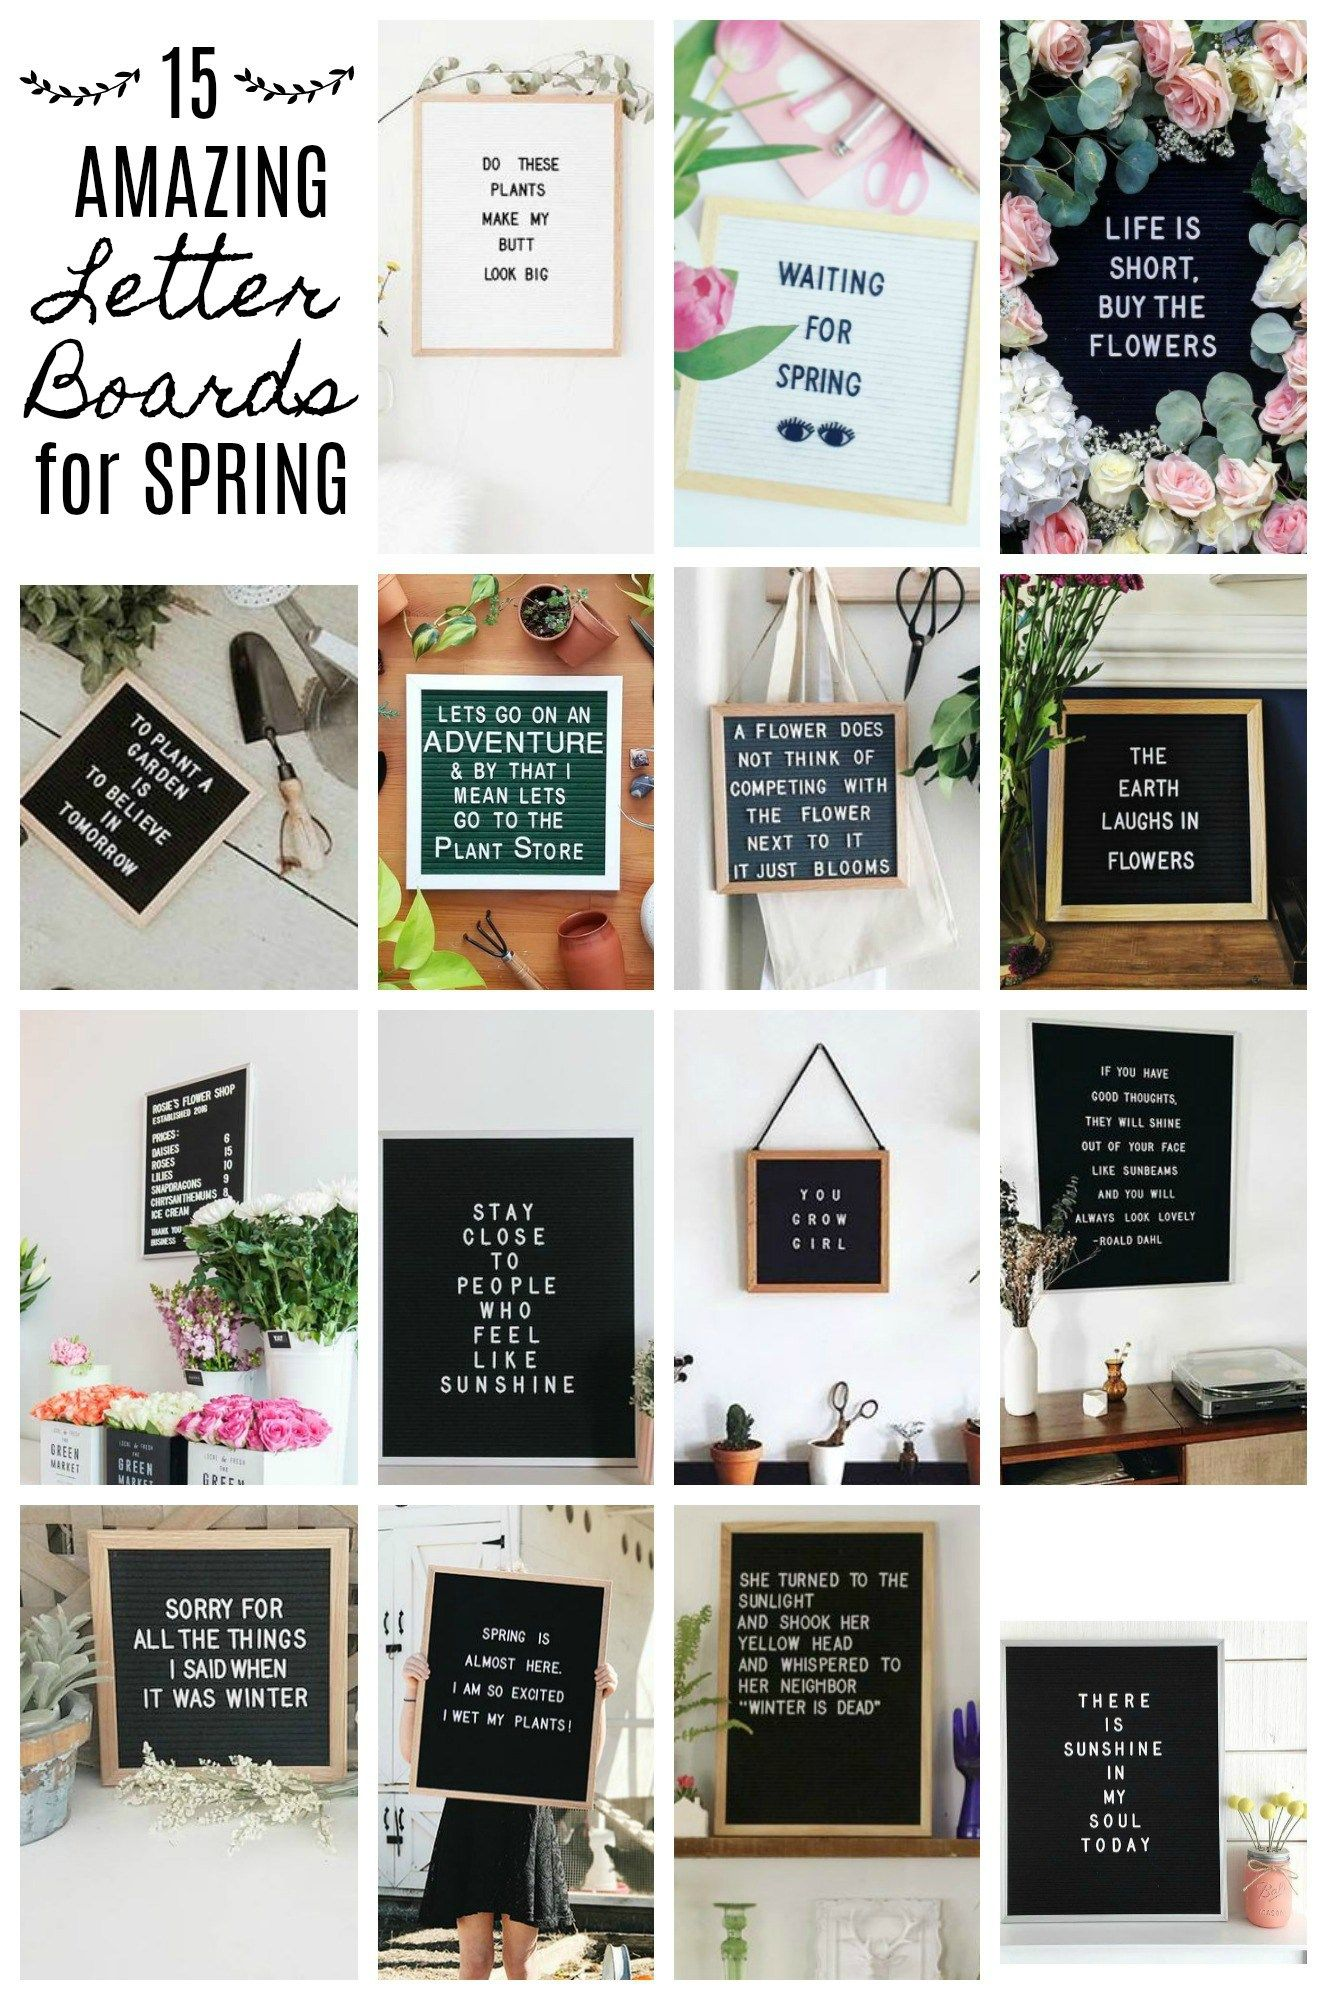 15 Amazing Letter Board Ideas for Spring   Farmhouse Blooms